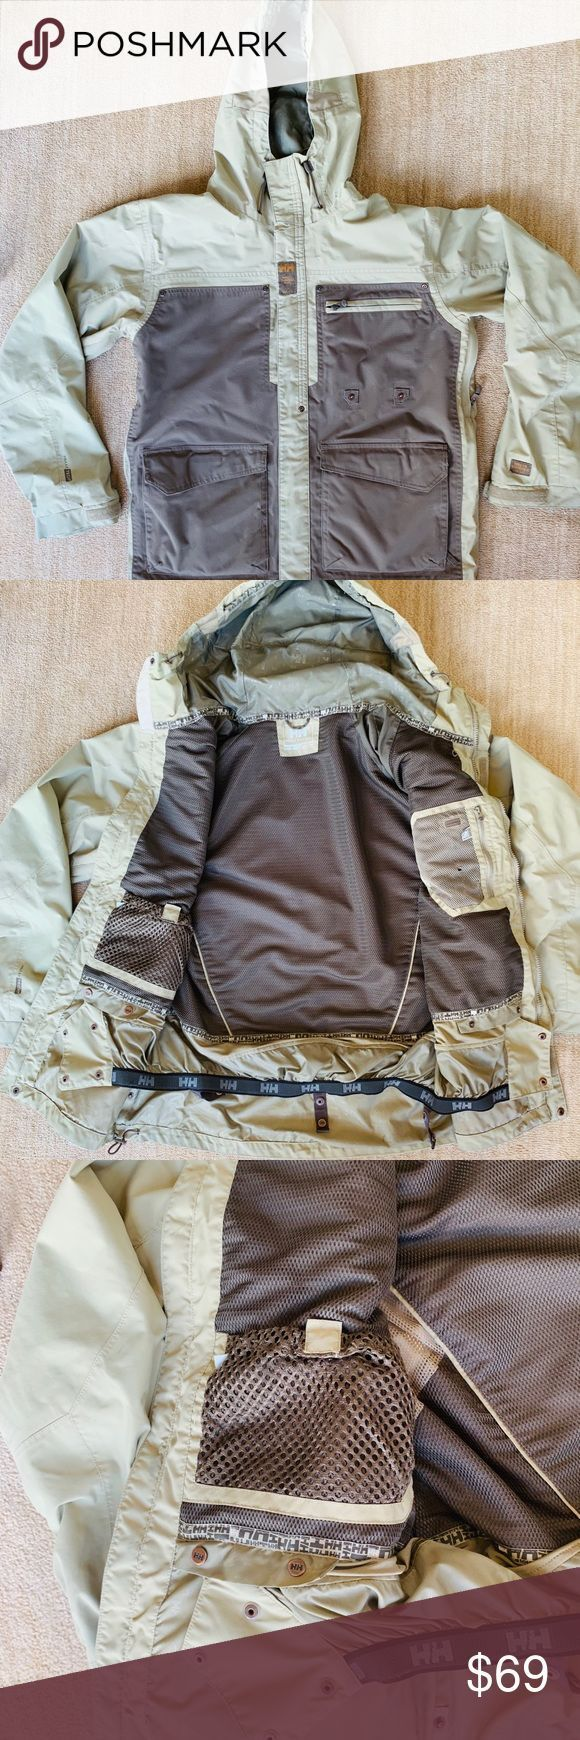 SALE Mens M Ski Snowboard Khaki Jacket Mens size medium Helly Hansen FINAL SALE Mens M Ski Snowboard Khaki Jacket Mens size medium Helly Hansen Snowboarden FINAL SALE Men...